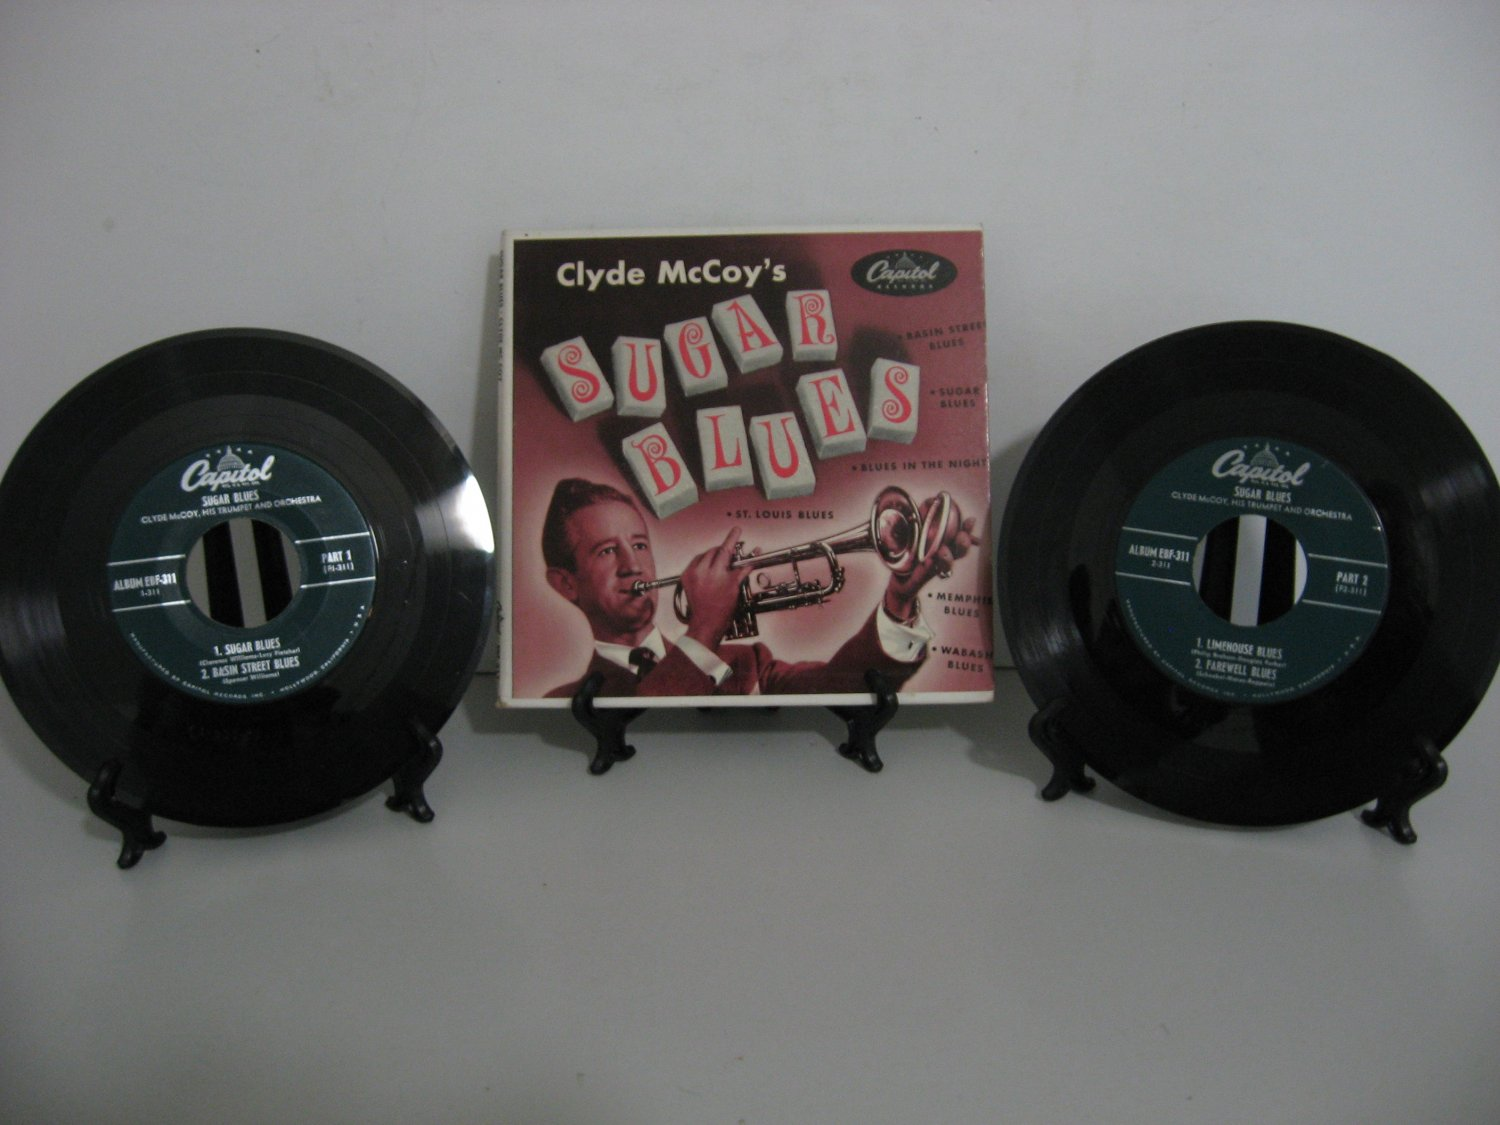 Rare Vinyl! Clyde McCoy - Sugar Blues - Double Record Set! - Circa 1952